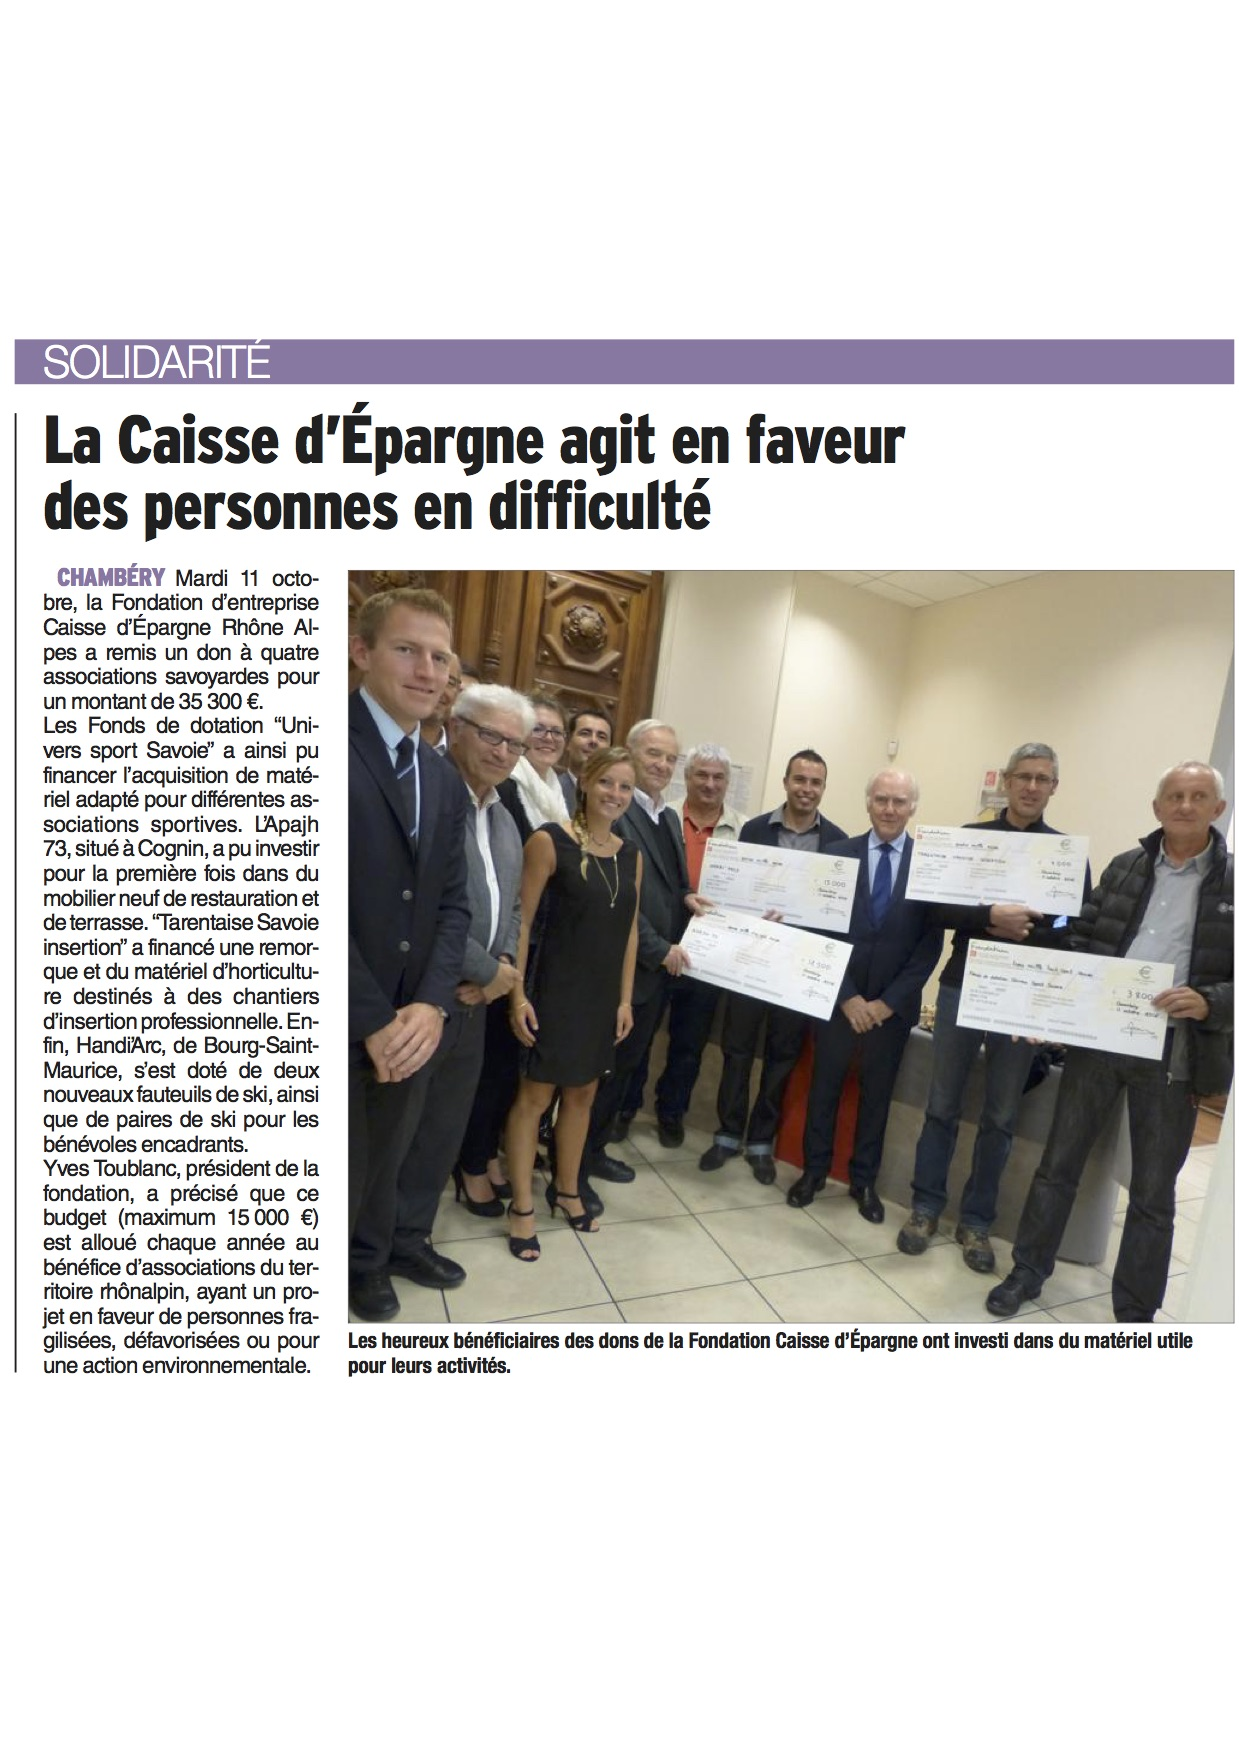 Remise Officielle Caisse d'Epargne Chambery